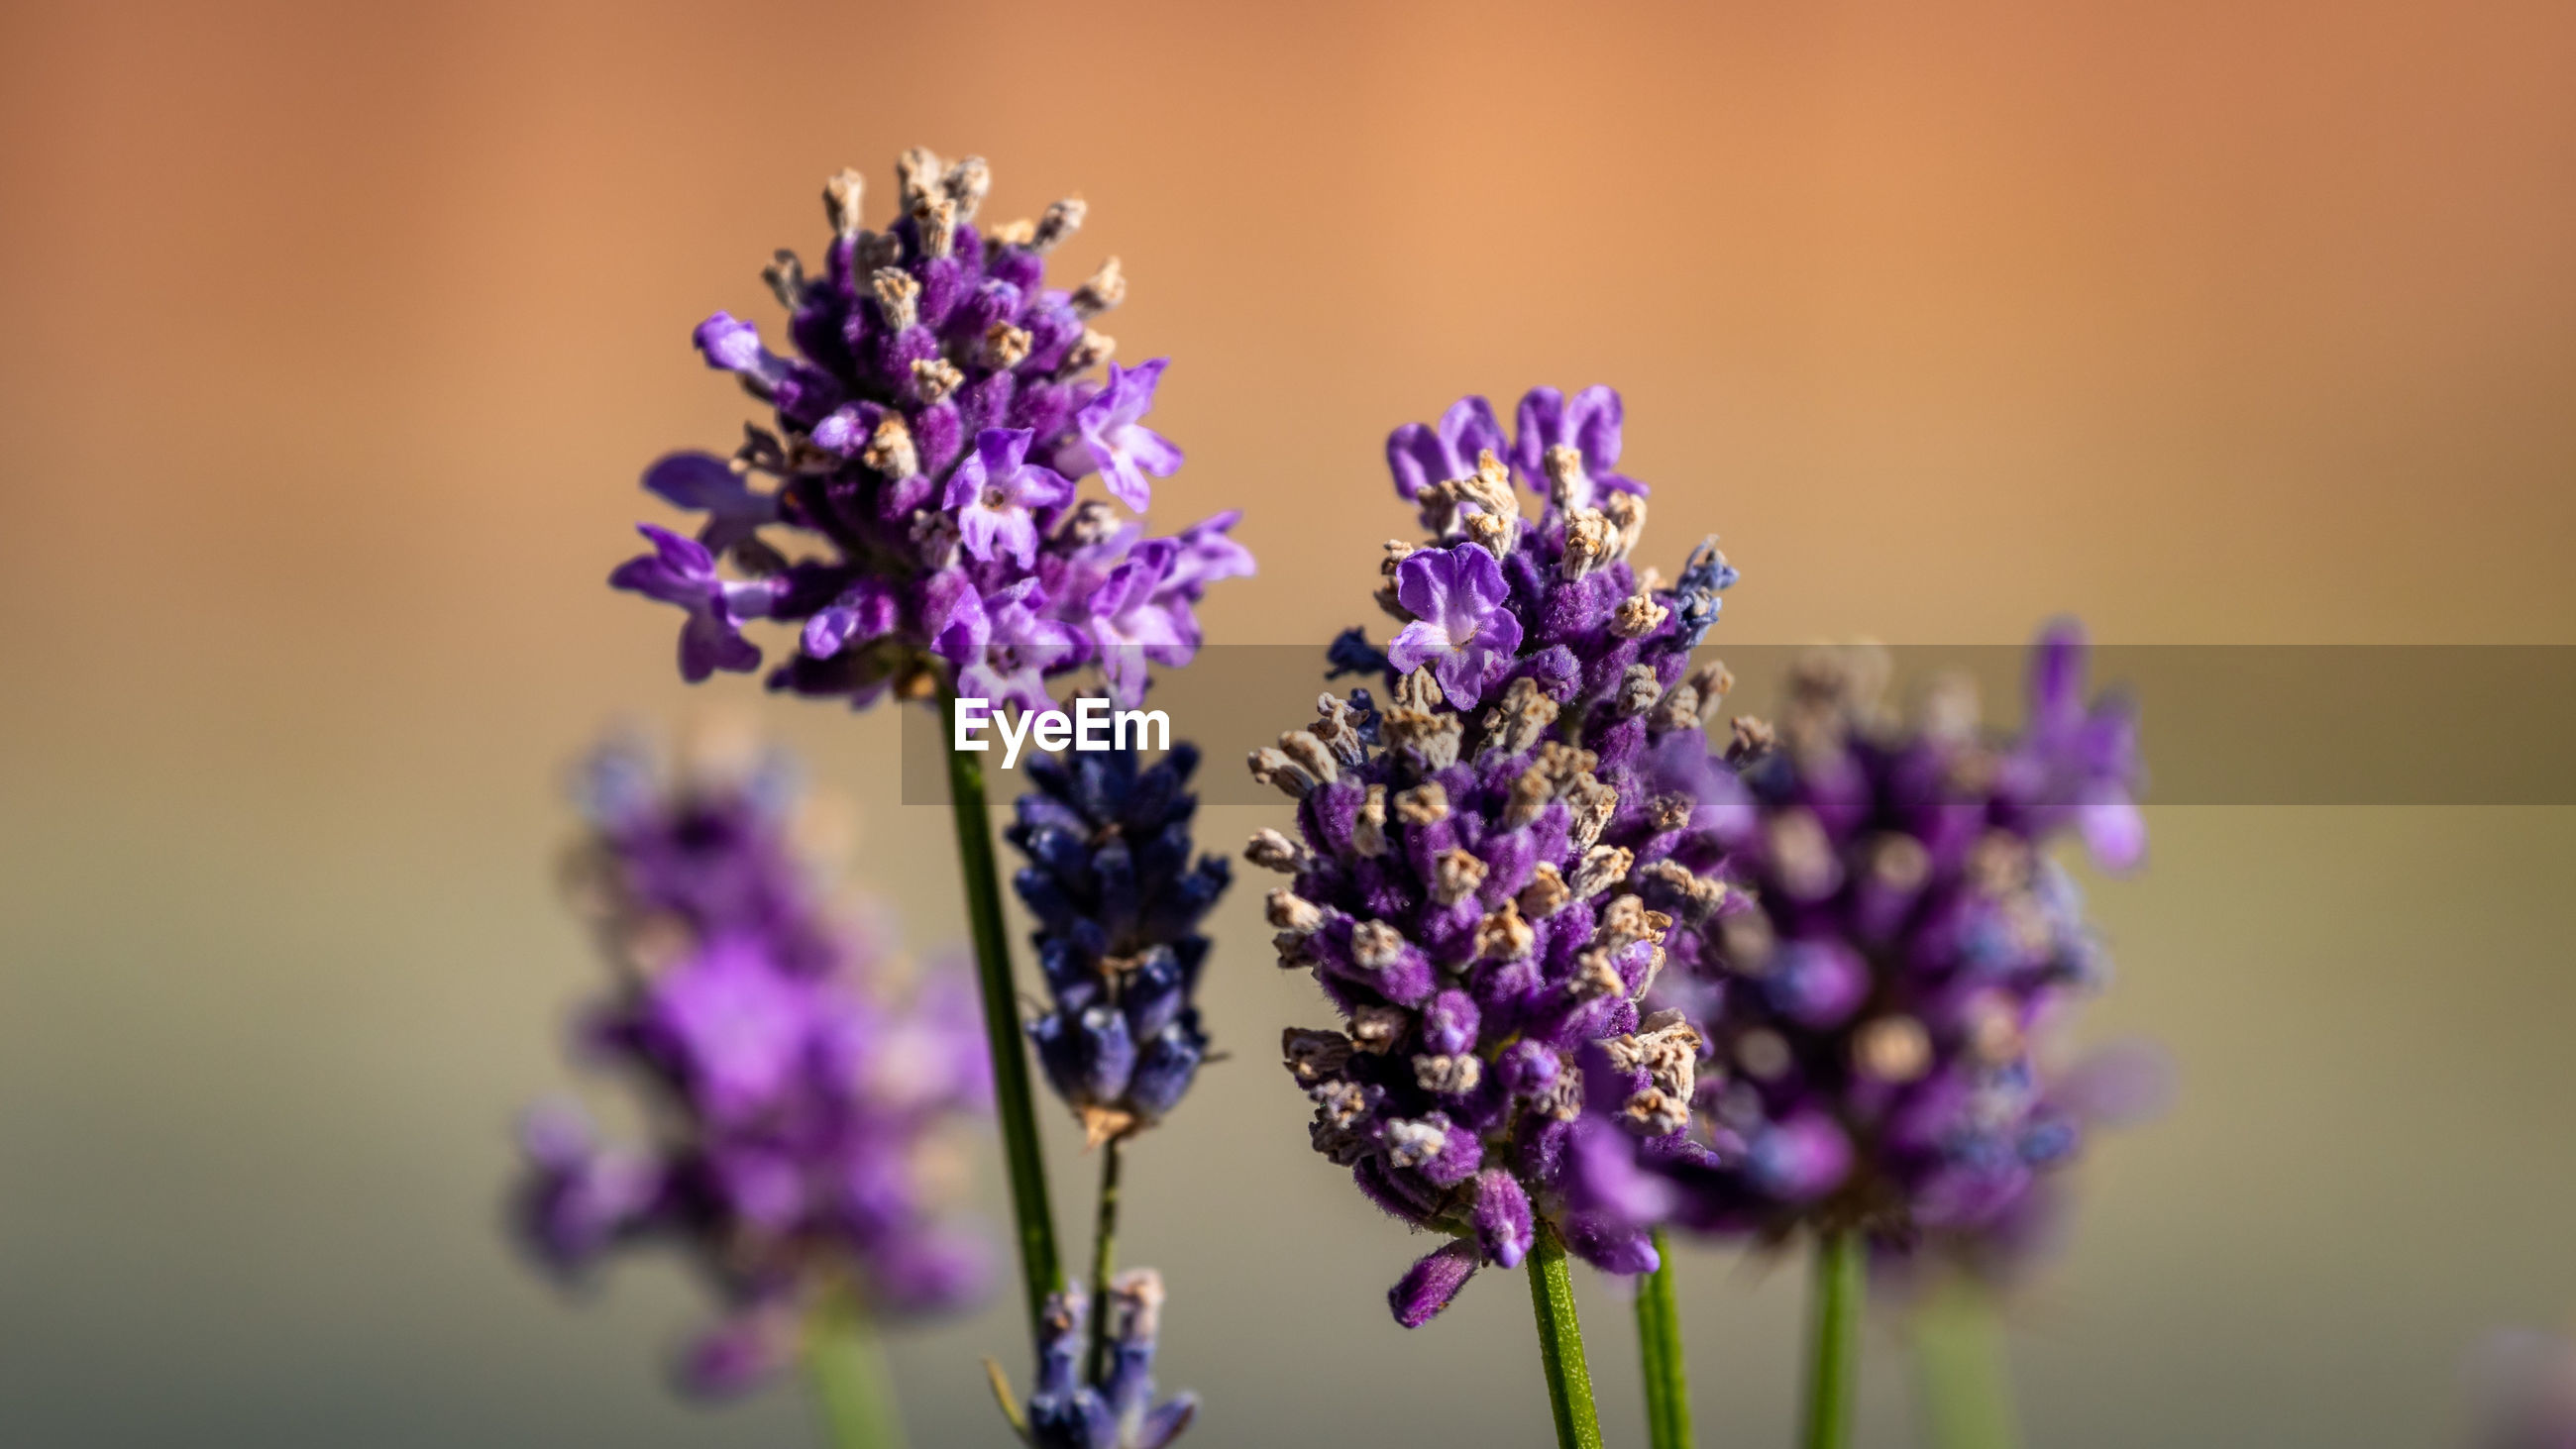 CLOSE-UP OF PURPLE LAVENDER FLOWERS